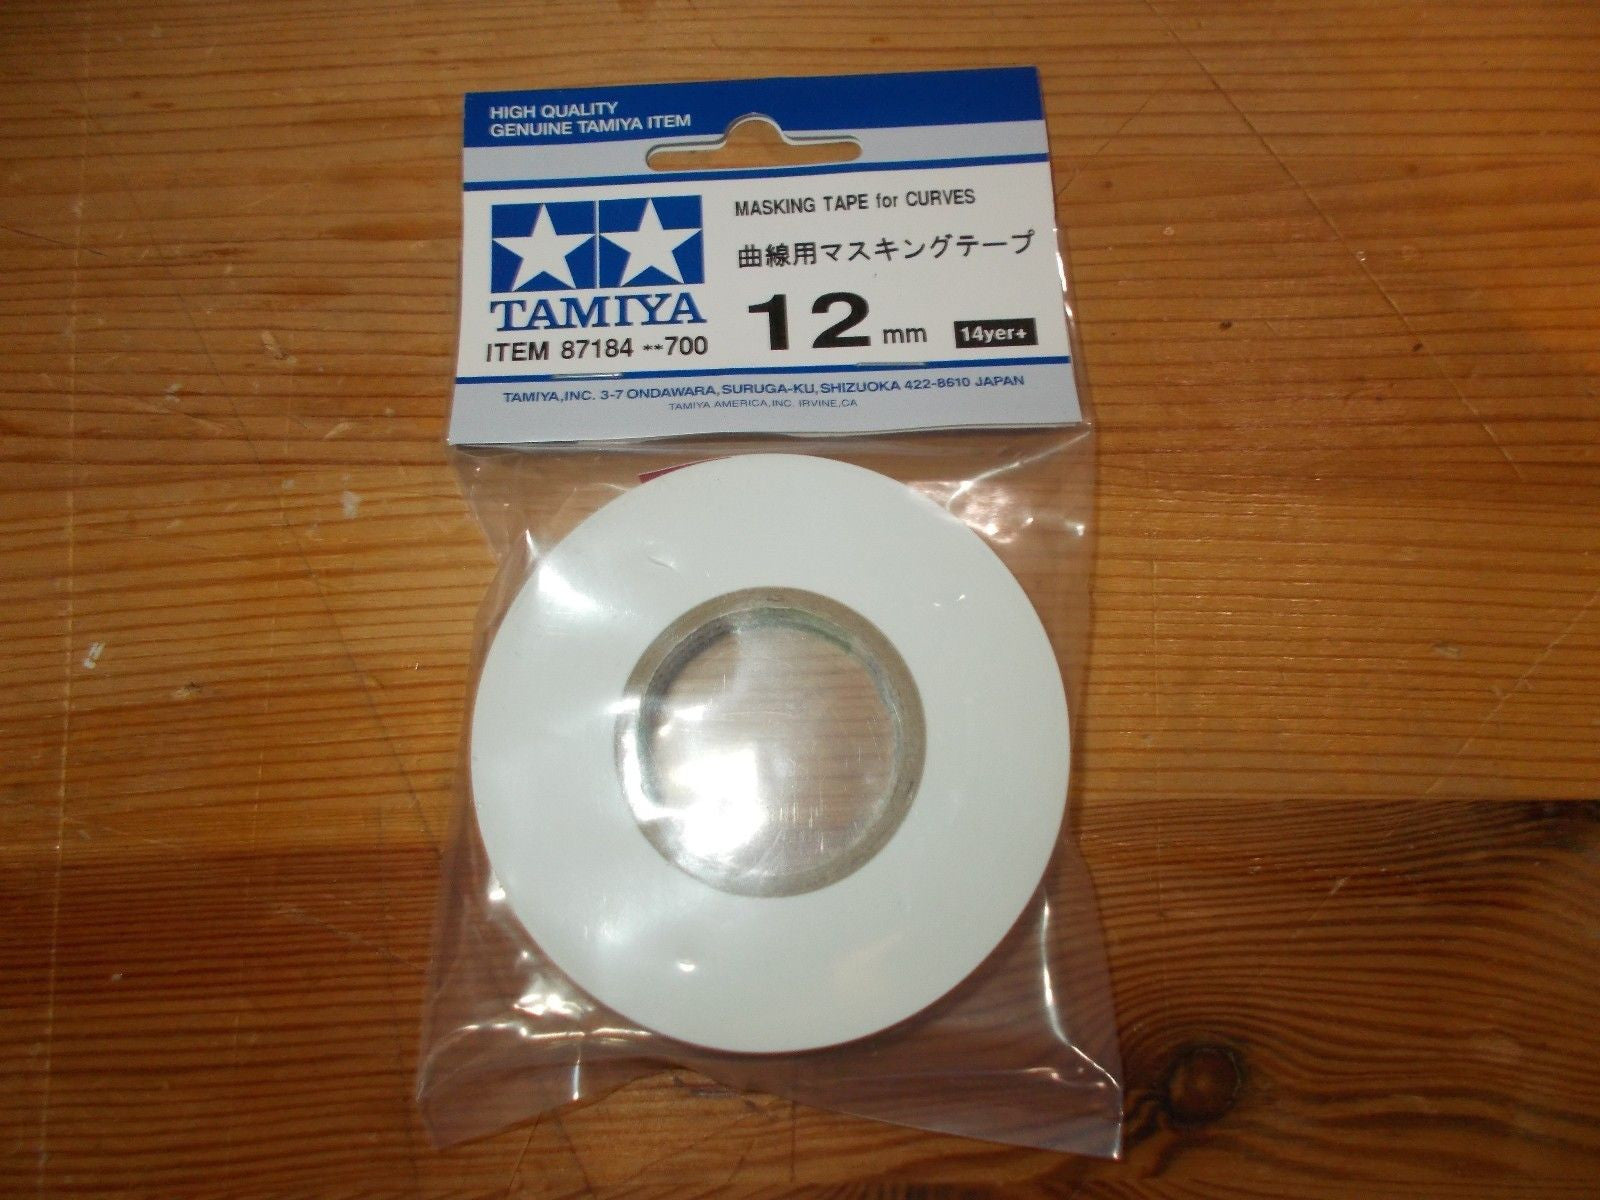 Tamiya Flexible Masking Tape for Curves- 12mm Width- Modelling